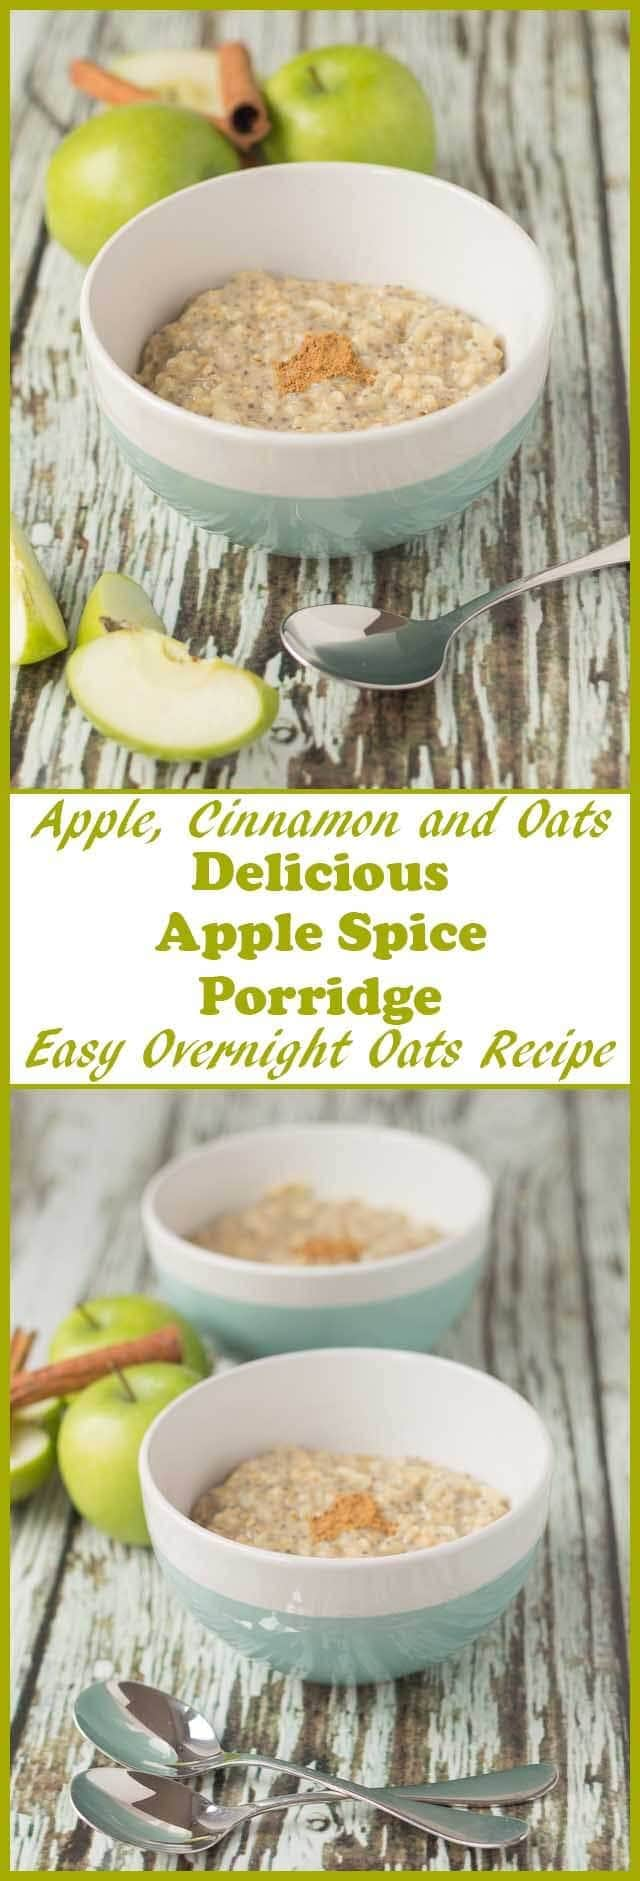 Apple spice porridge is a deliciously simple heart-warming breakfast with a sweet apple taste and aromas of cinnamon, it's literally a hug in a bowl. Perfect for cold winters mornings.